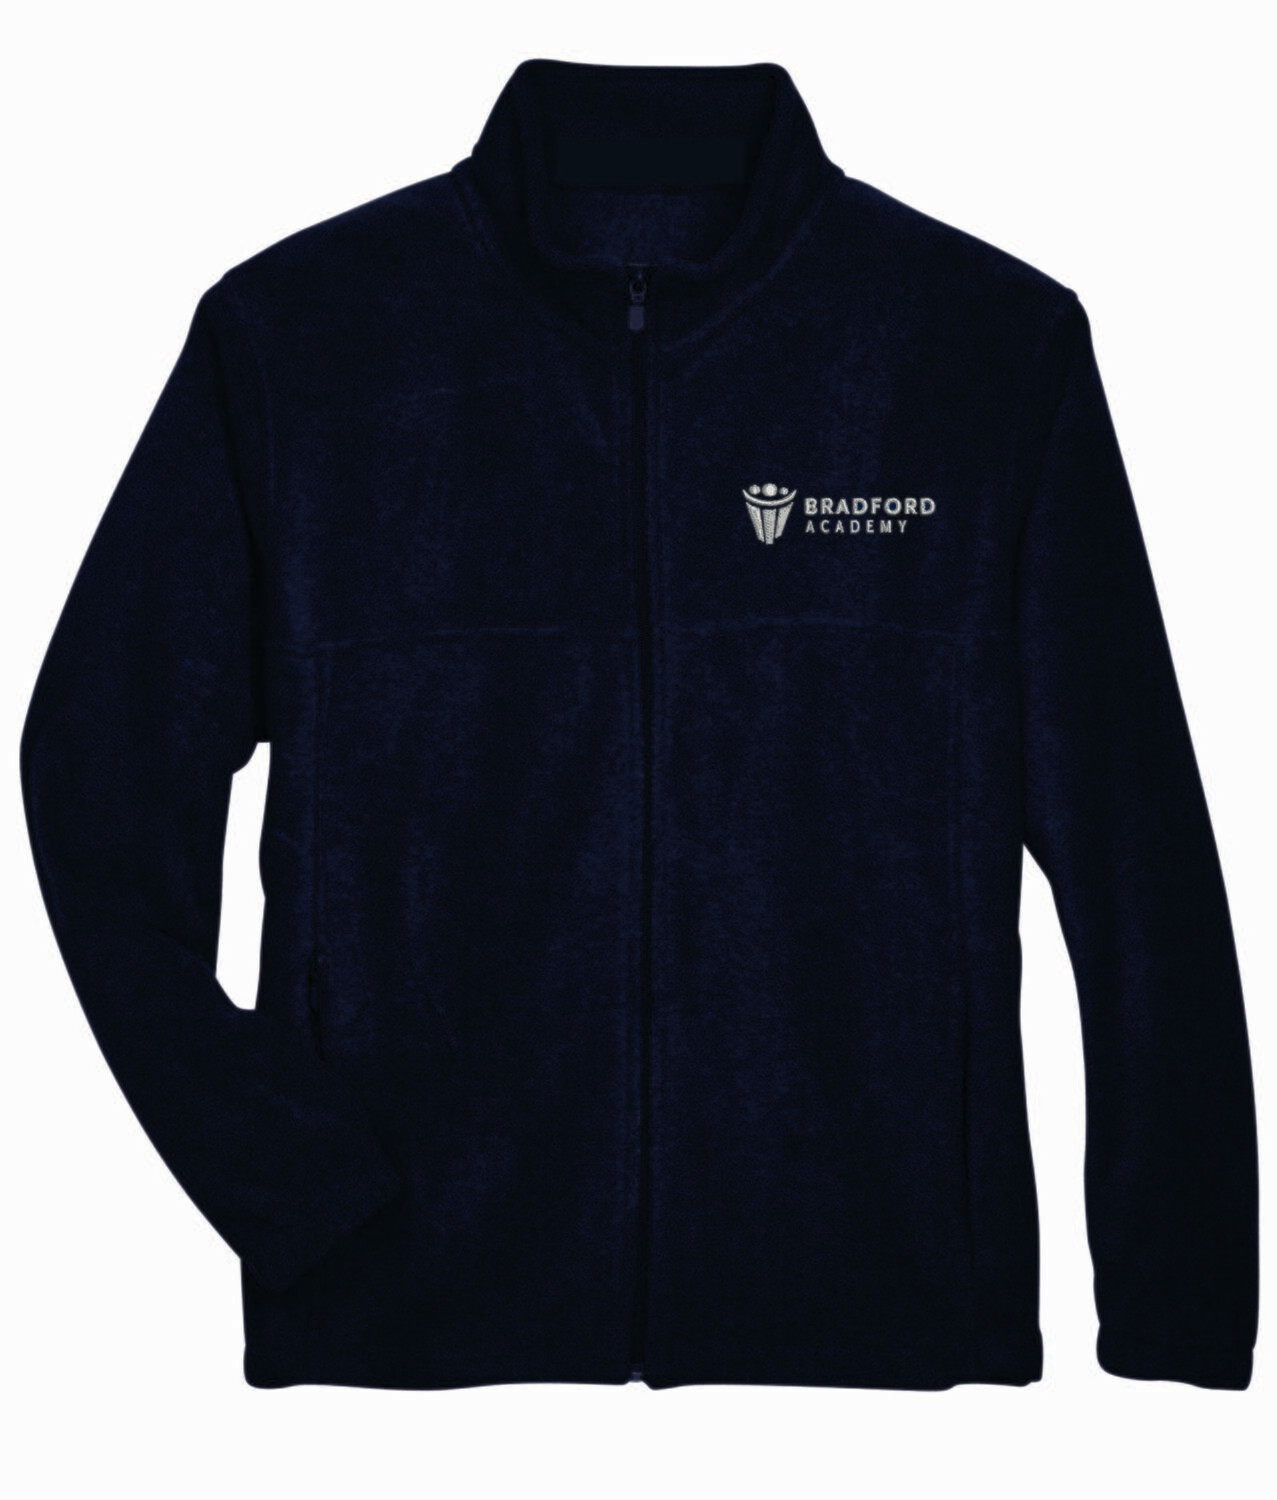 Bradford Full Zip Fleece Jacket